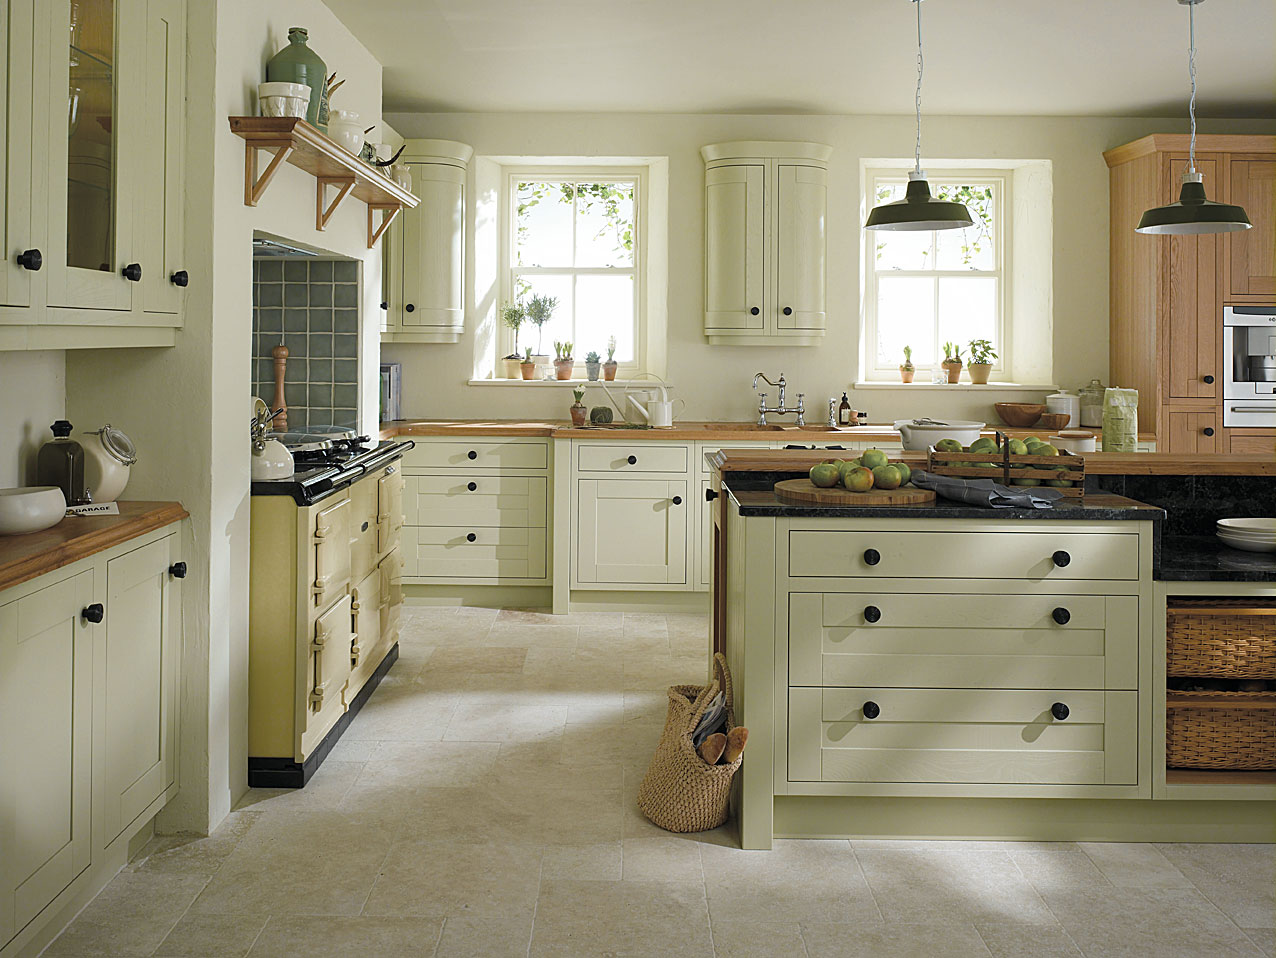 30 Popular Traditional Kitchen Design Ideas. Kitchen Layout Dimensions. Bronze Kitchen Cabinet Hardware. Pineapple Kitchen. Rolling Cart For Kitchen. Farmhouse Kitchen Chairs. Victoria Hagan Kitchen. New Kitchen Colors. Modern Kitchen Decorating Ideas